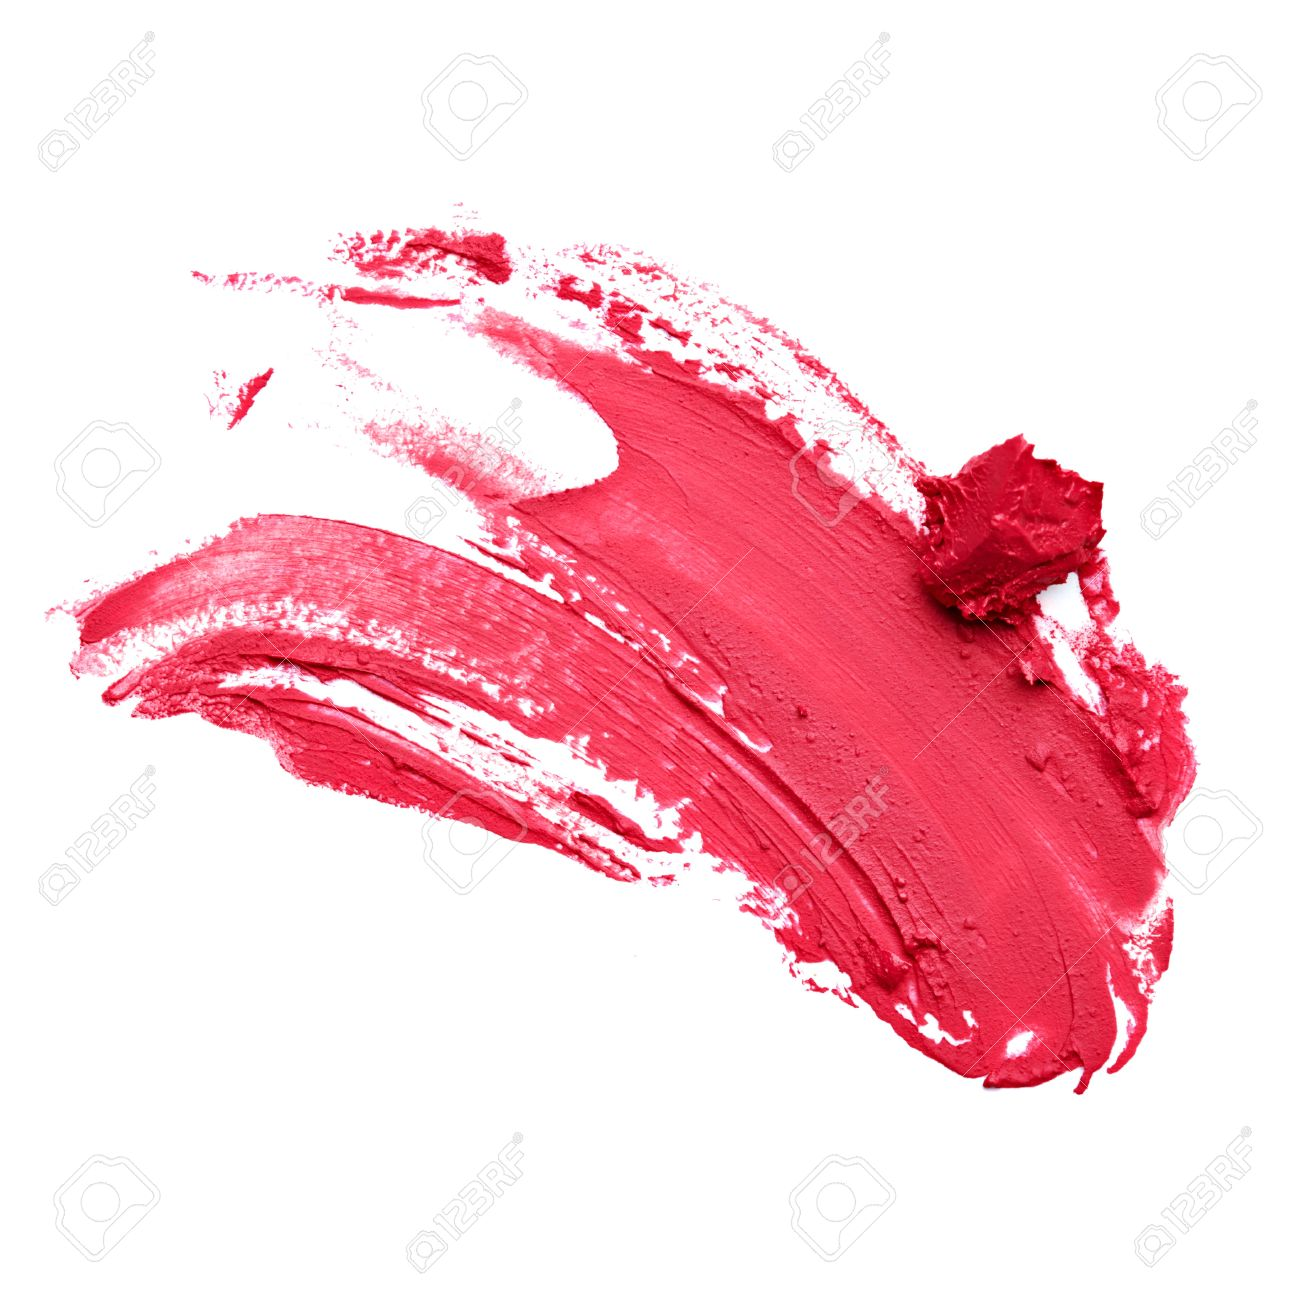 Smudged Red Lipstick Stock Photo, Picture And Royalty Free Image ...